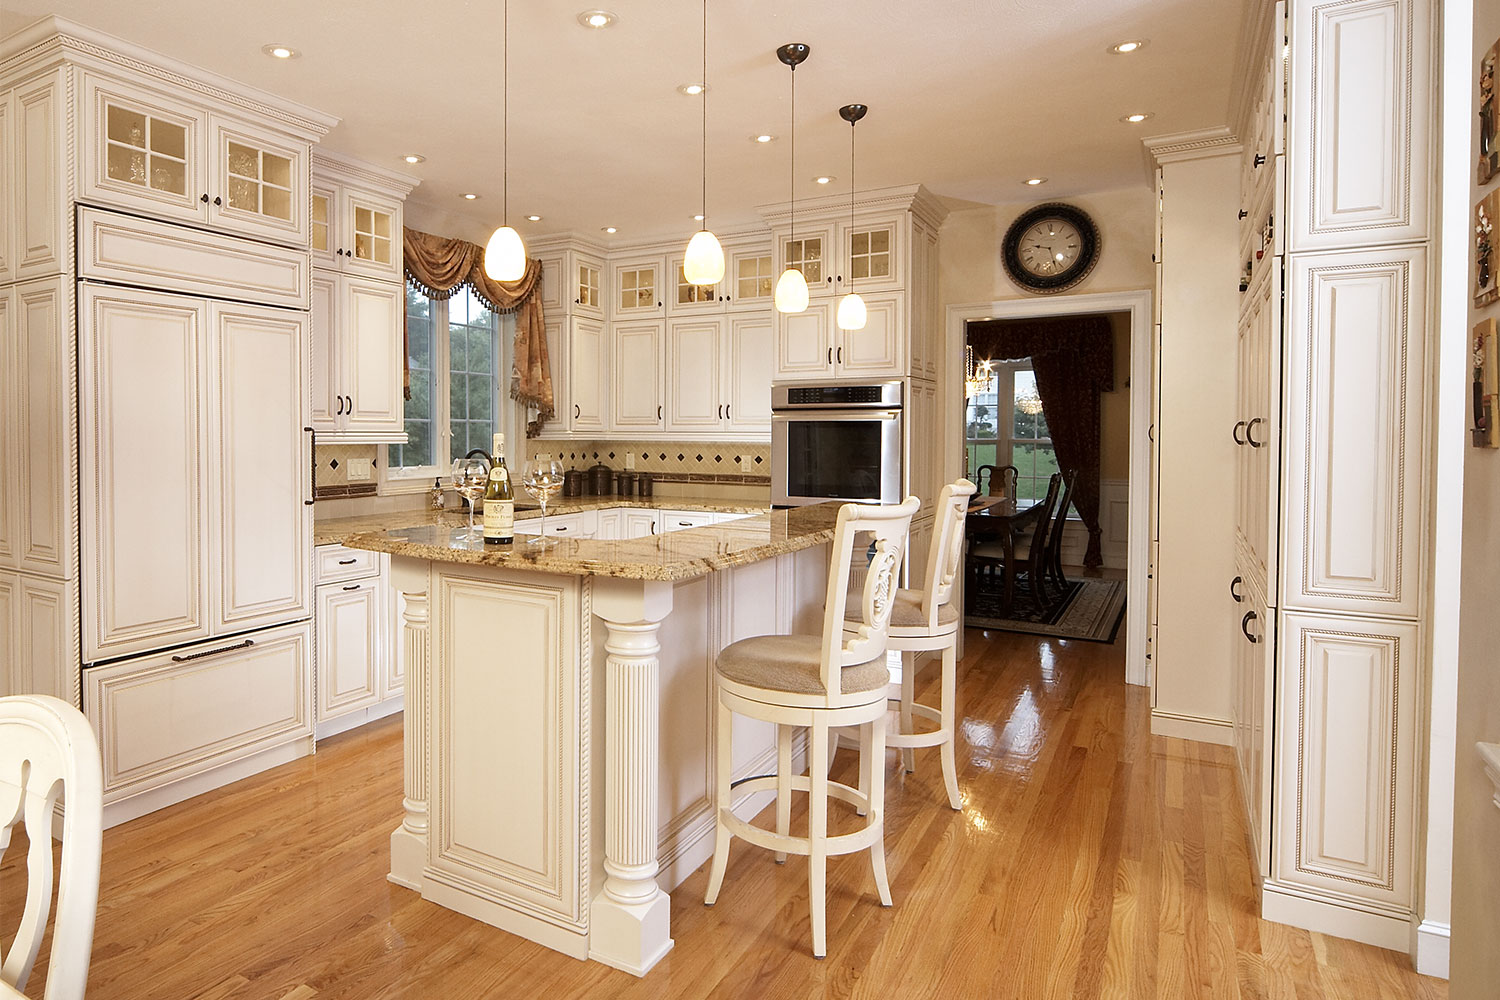 Kitchen Cabinets with Columns